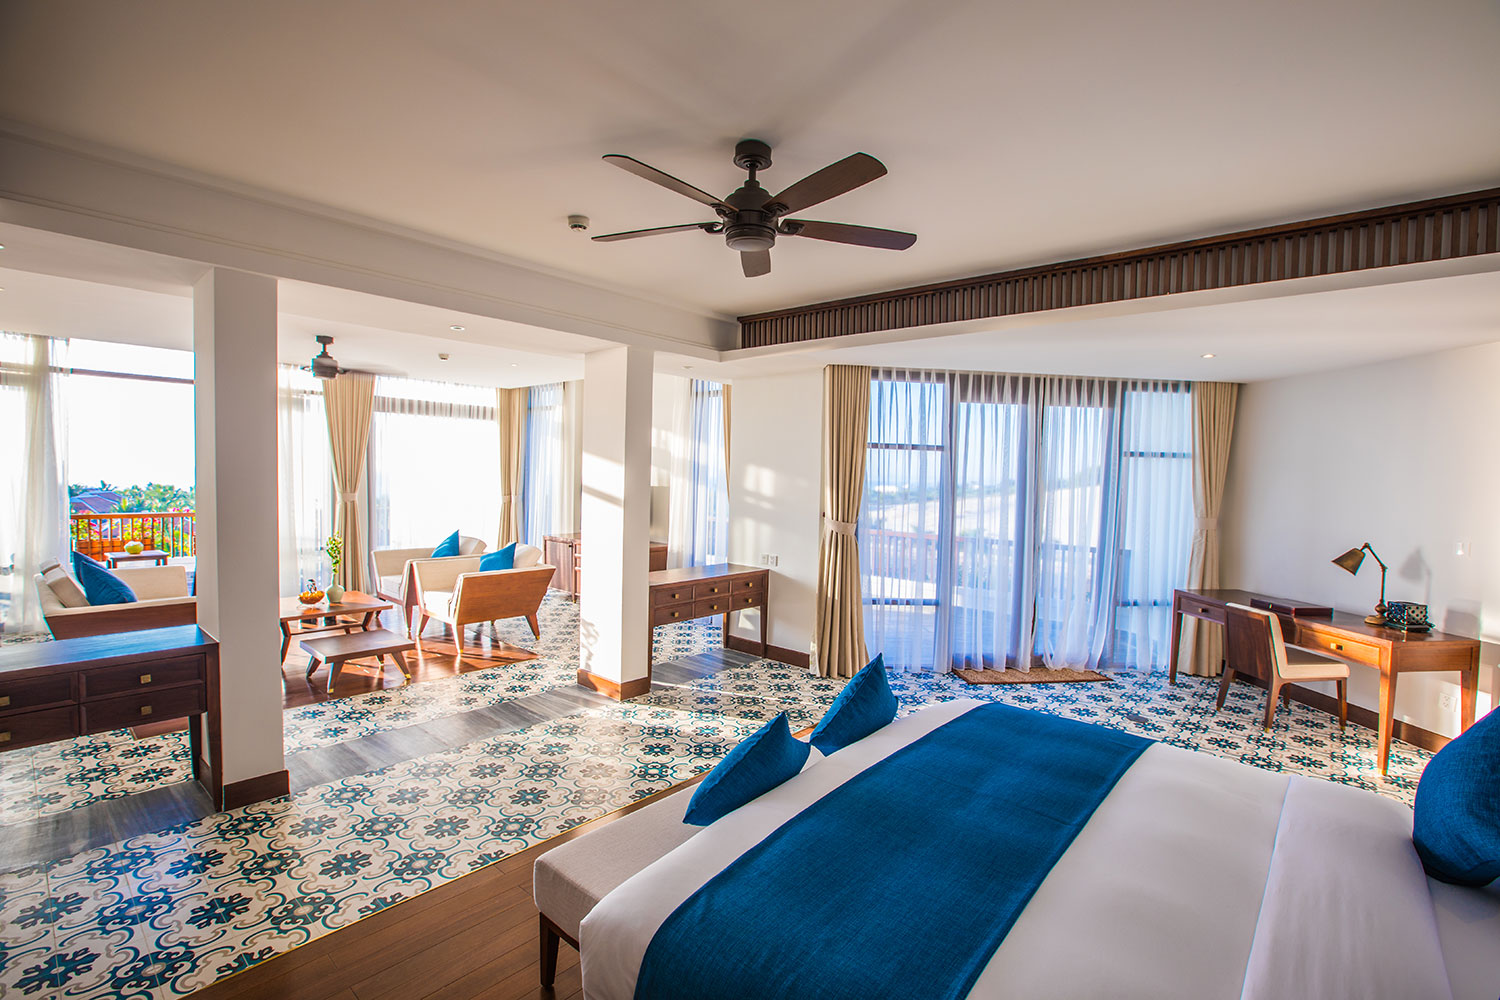 09-The-Anam--Deluxe-Collection---The-Anam-Terrace-Sea-View-Suite.jpg